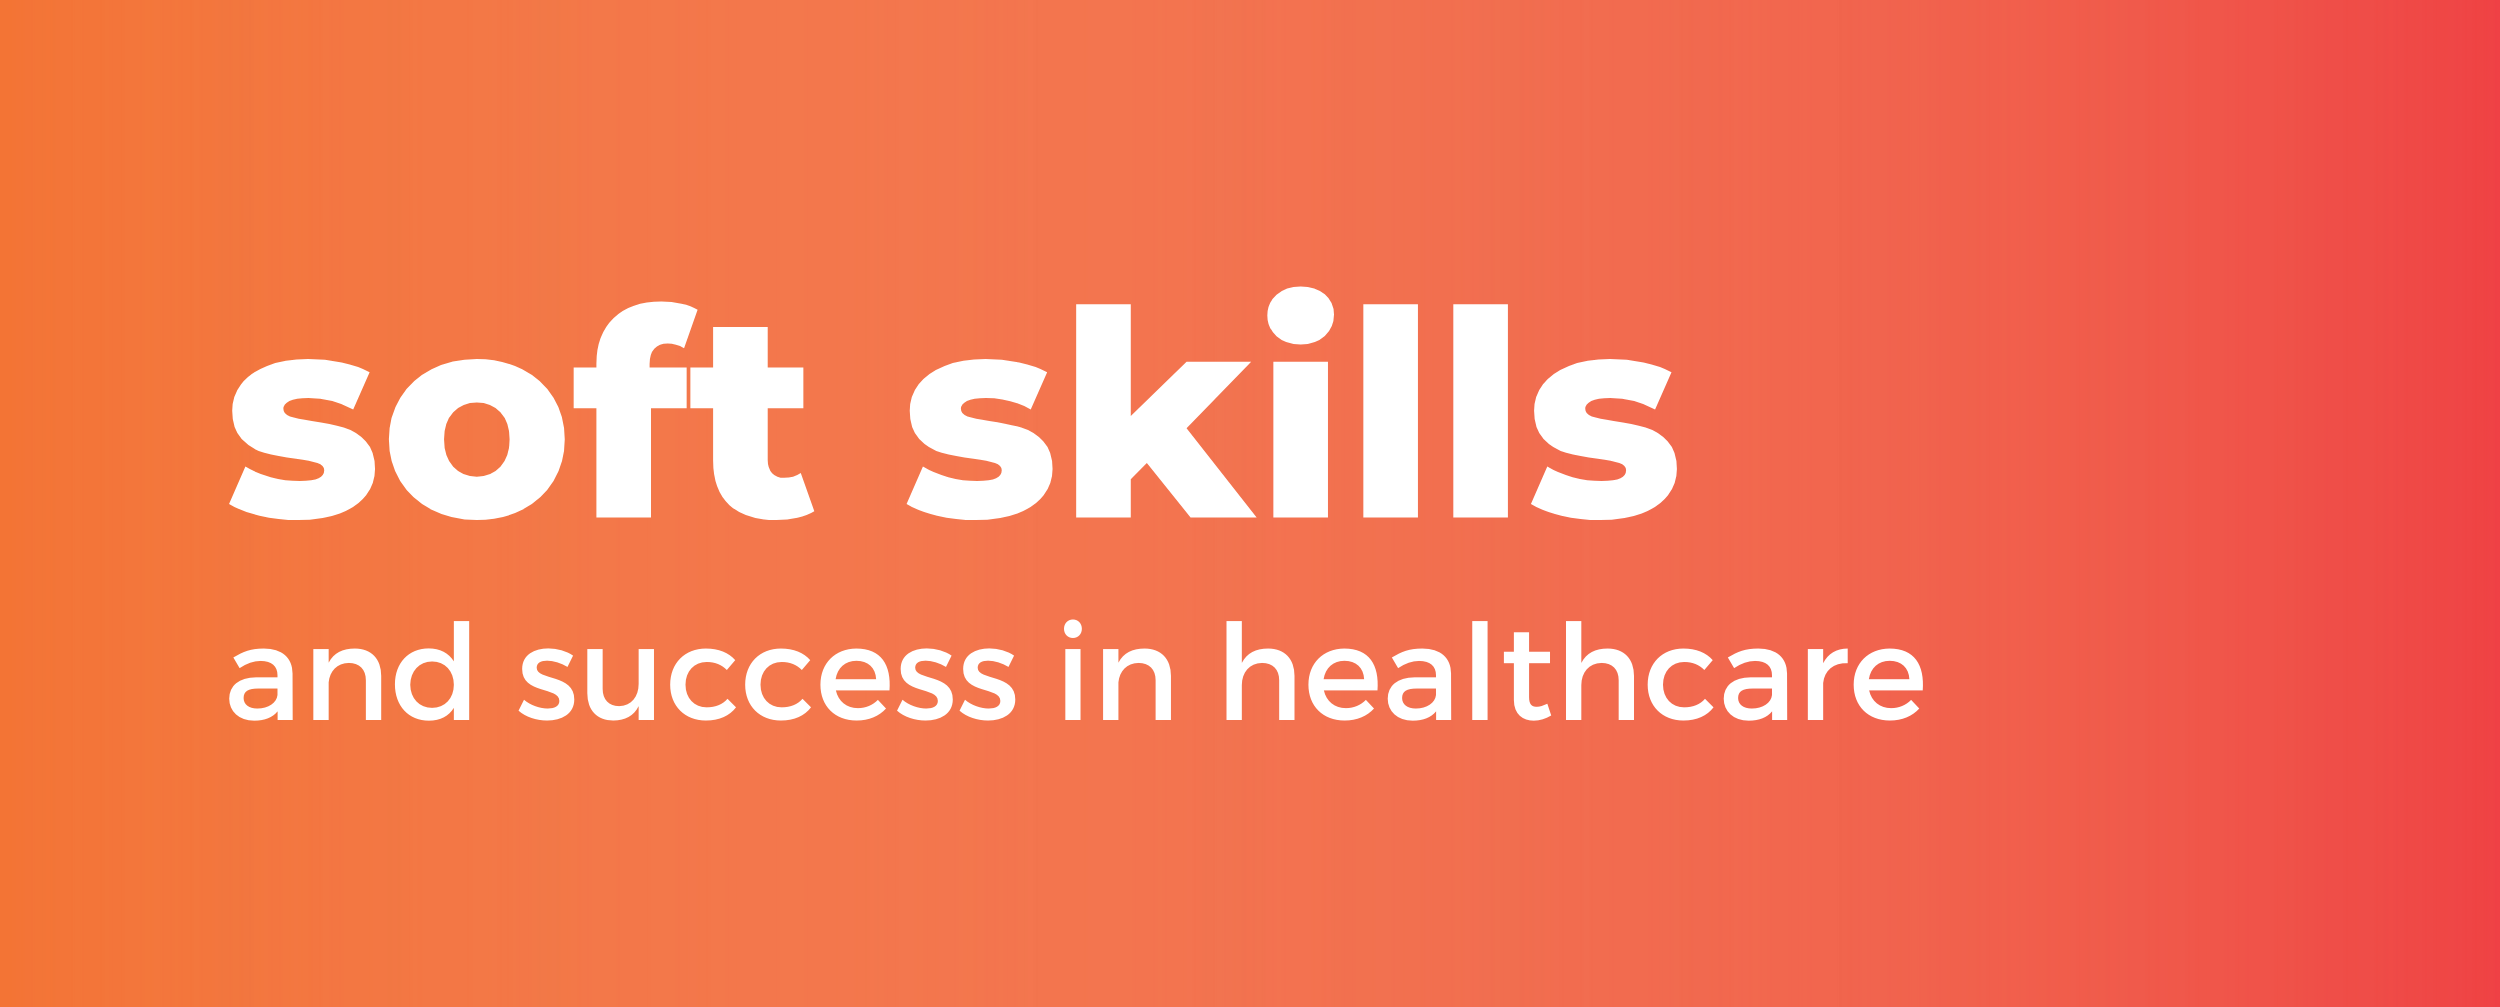 soft skills and success in healthcare